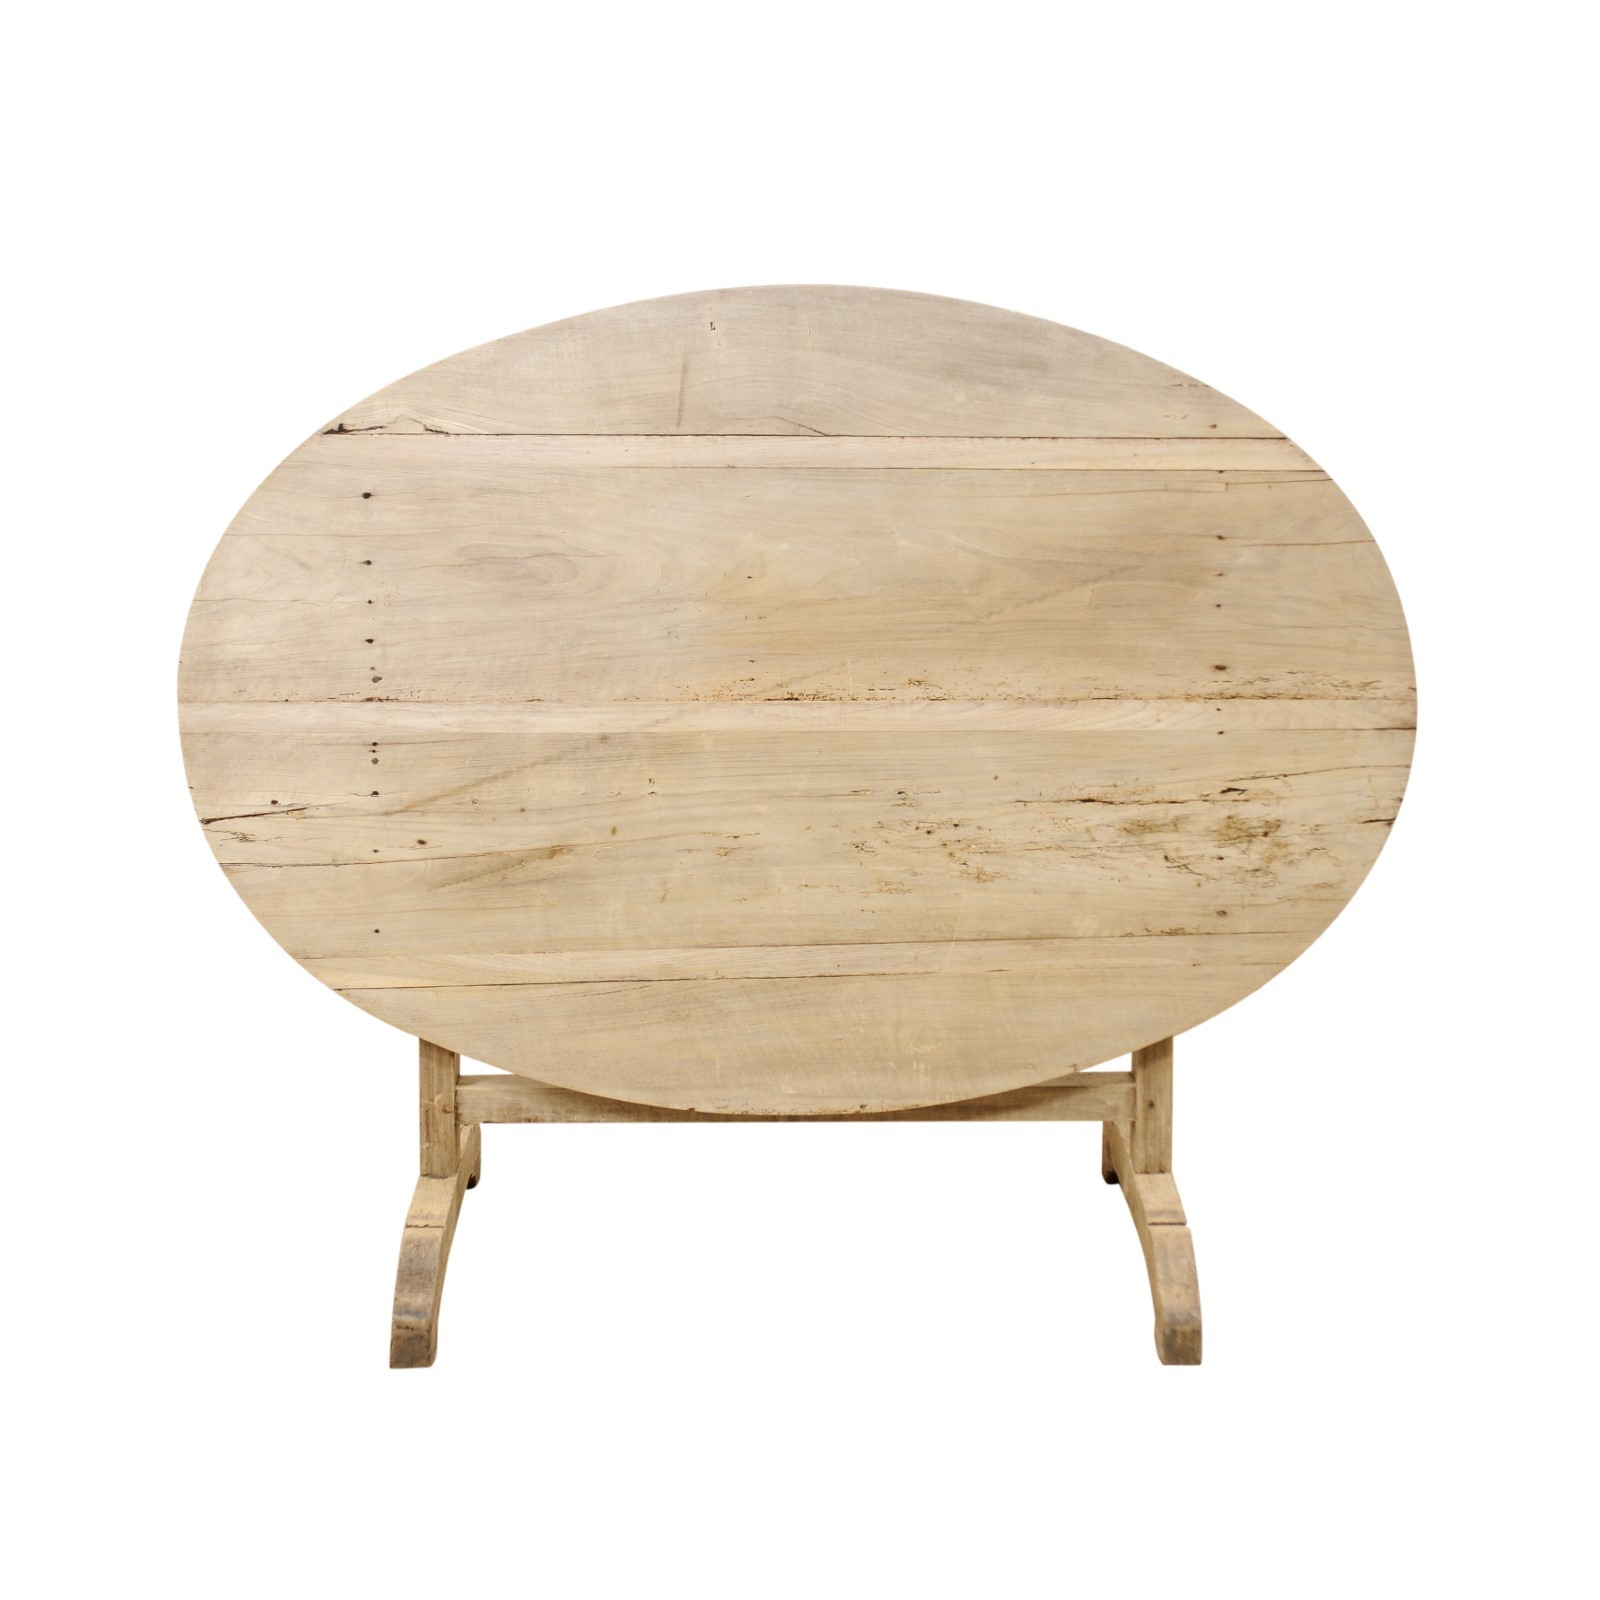 Antique French Oval Wine Tasting Table